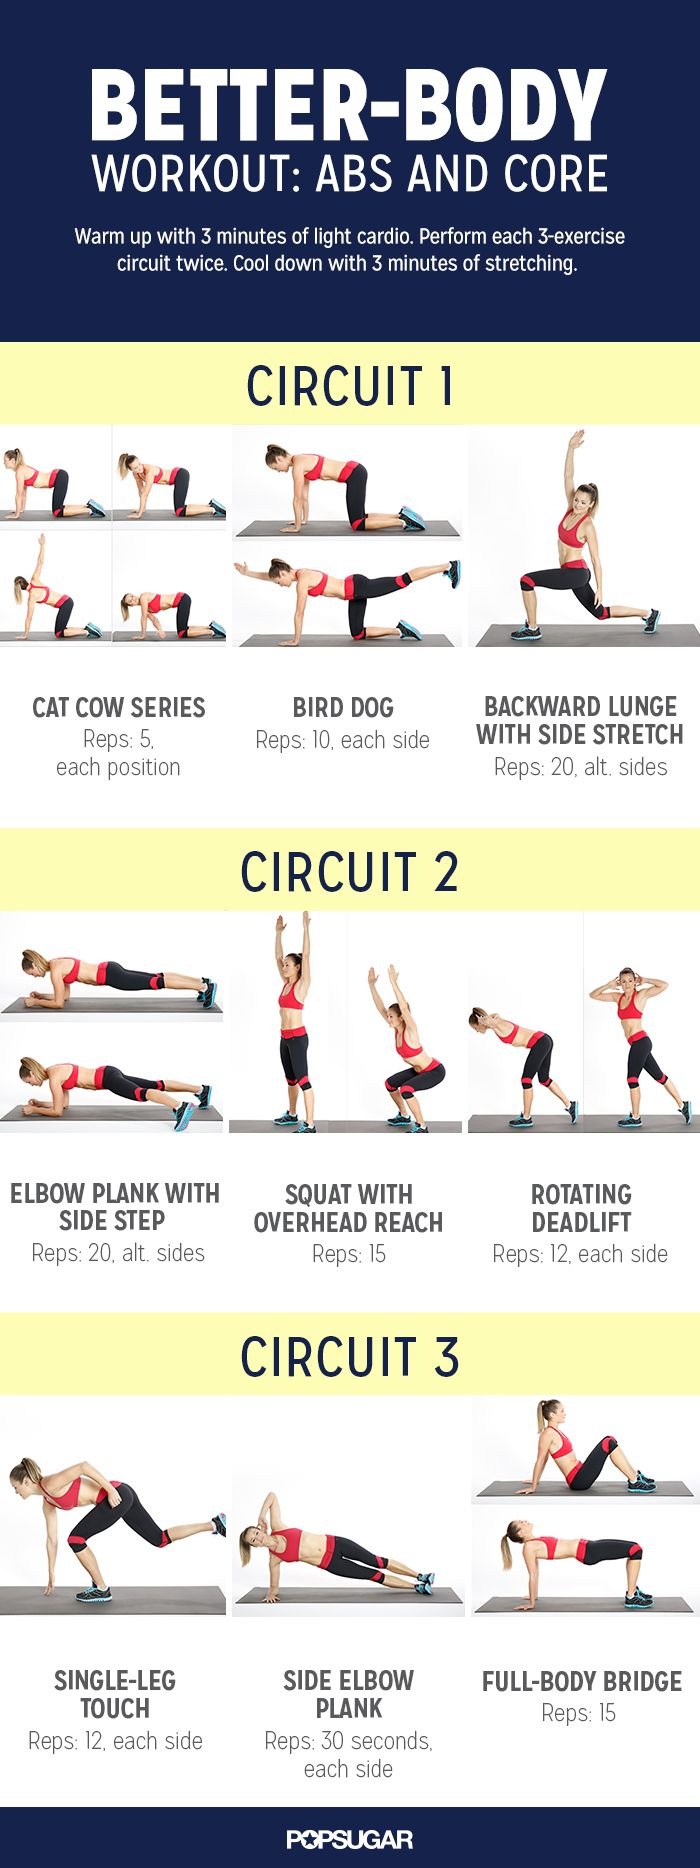 This workout targets the core (abs and back) and glutes for a stronger 2015. The bodyweight circuit takes just under 30-minutes!